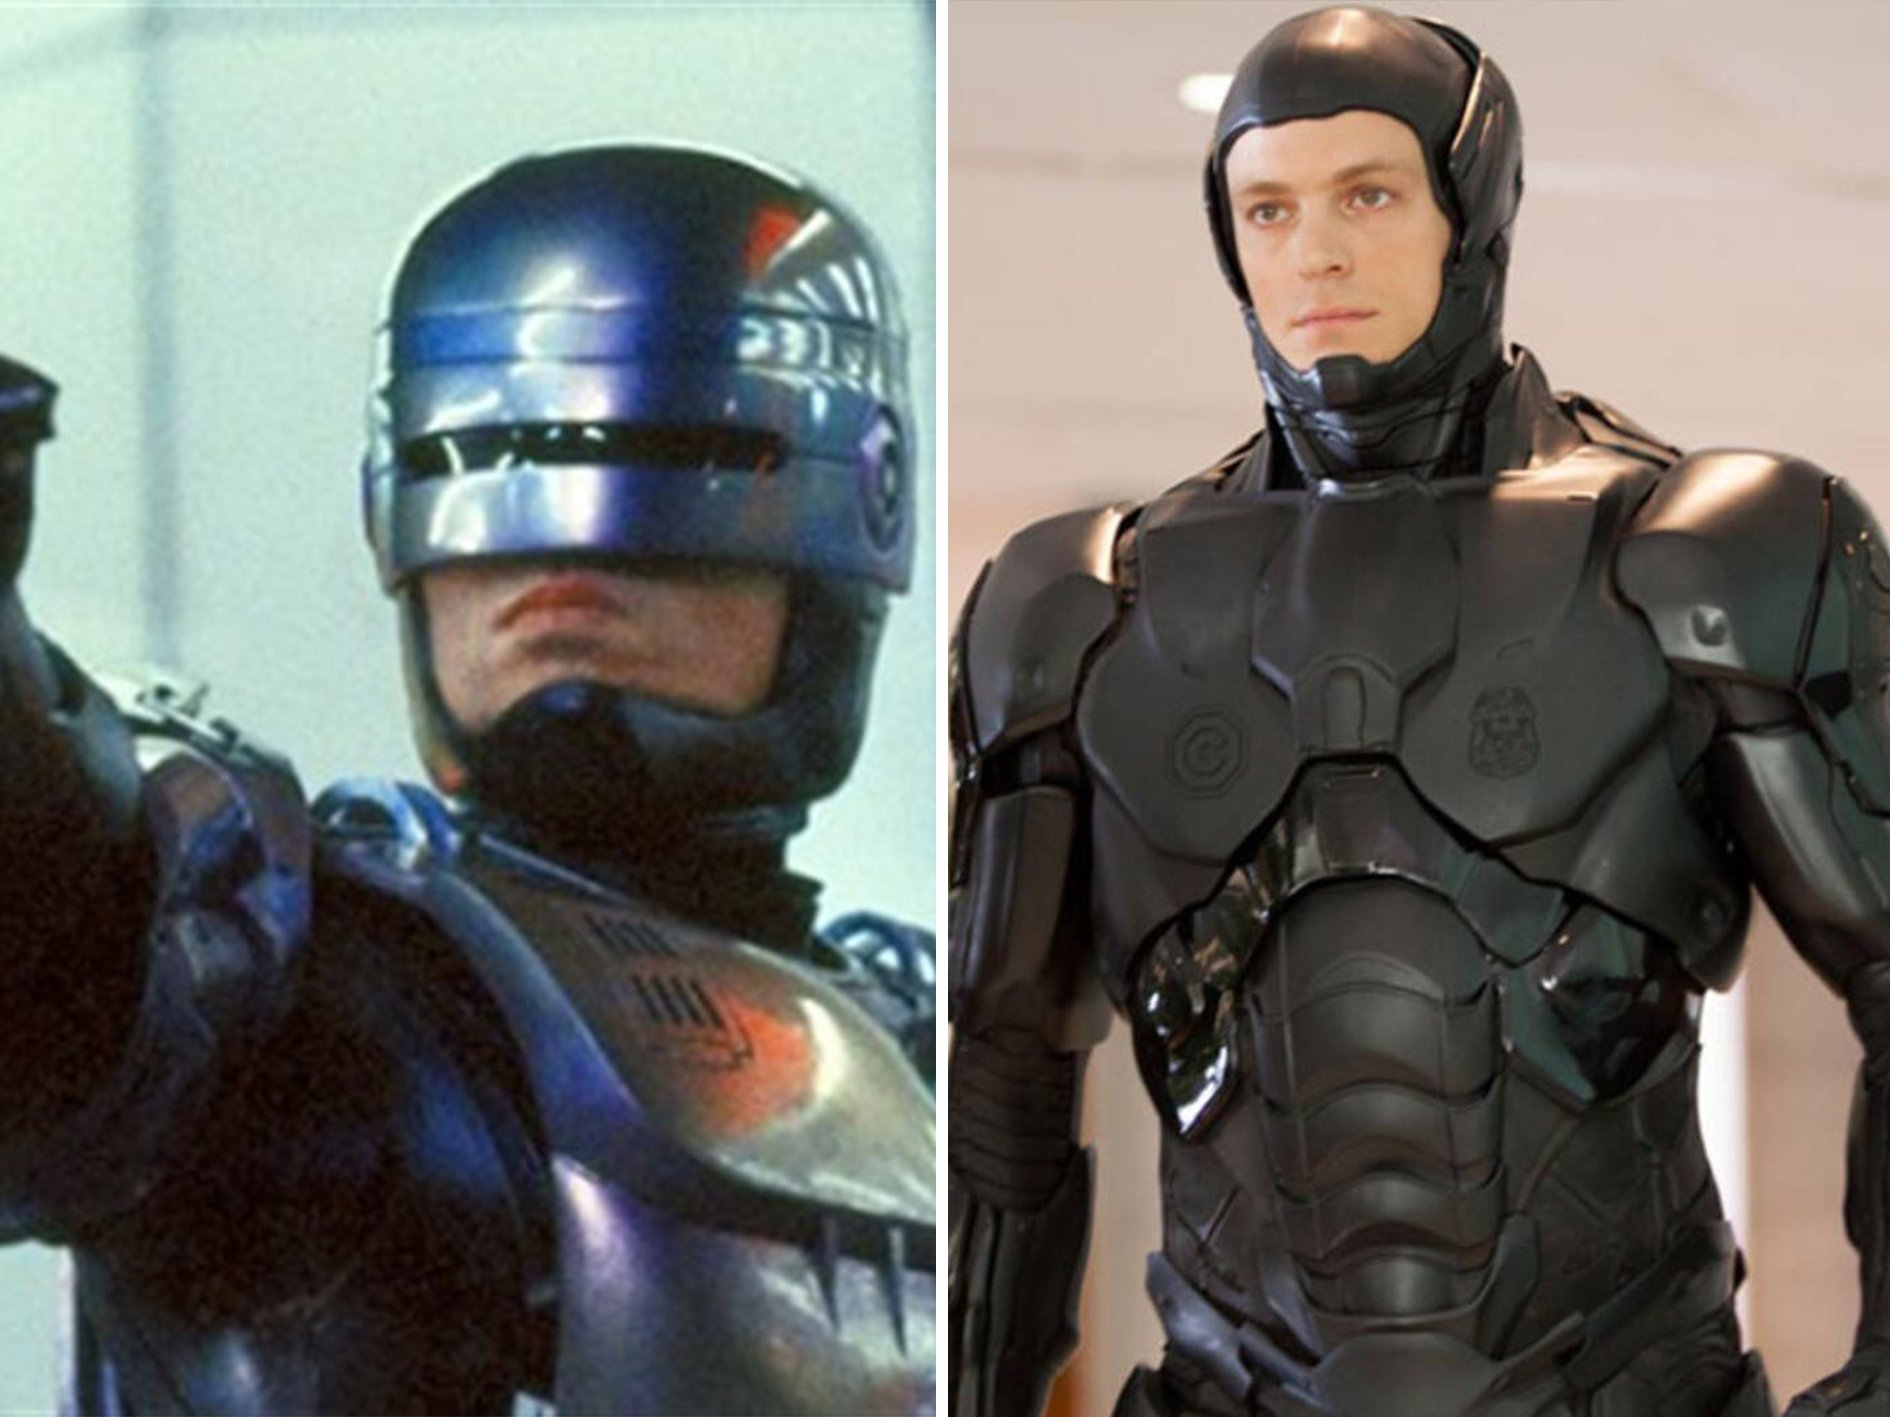 RoboCop Awful Remakes Of Classic 80s Films That Should Have Been Left Unmade